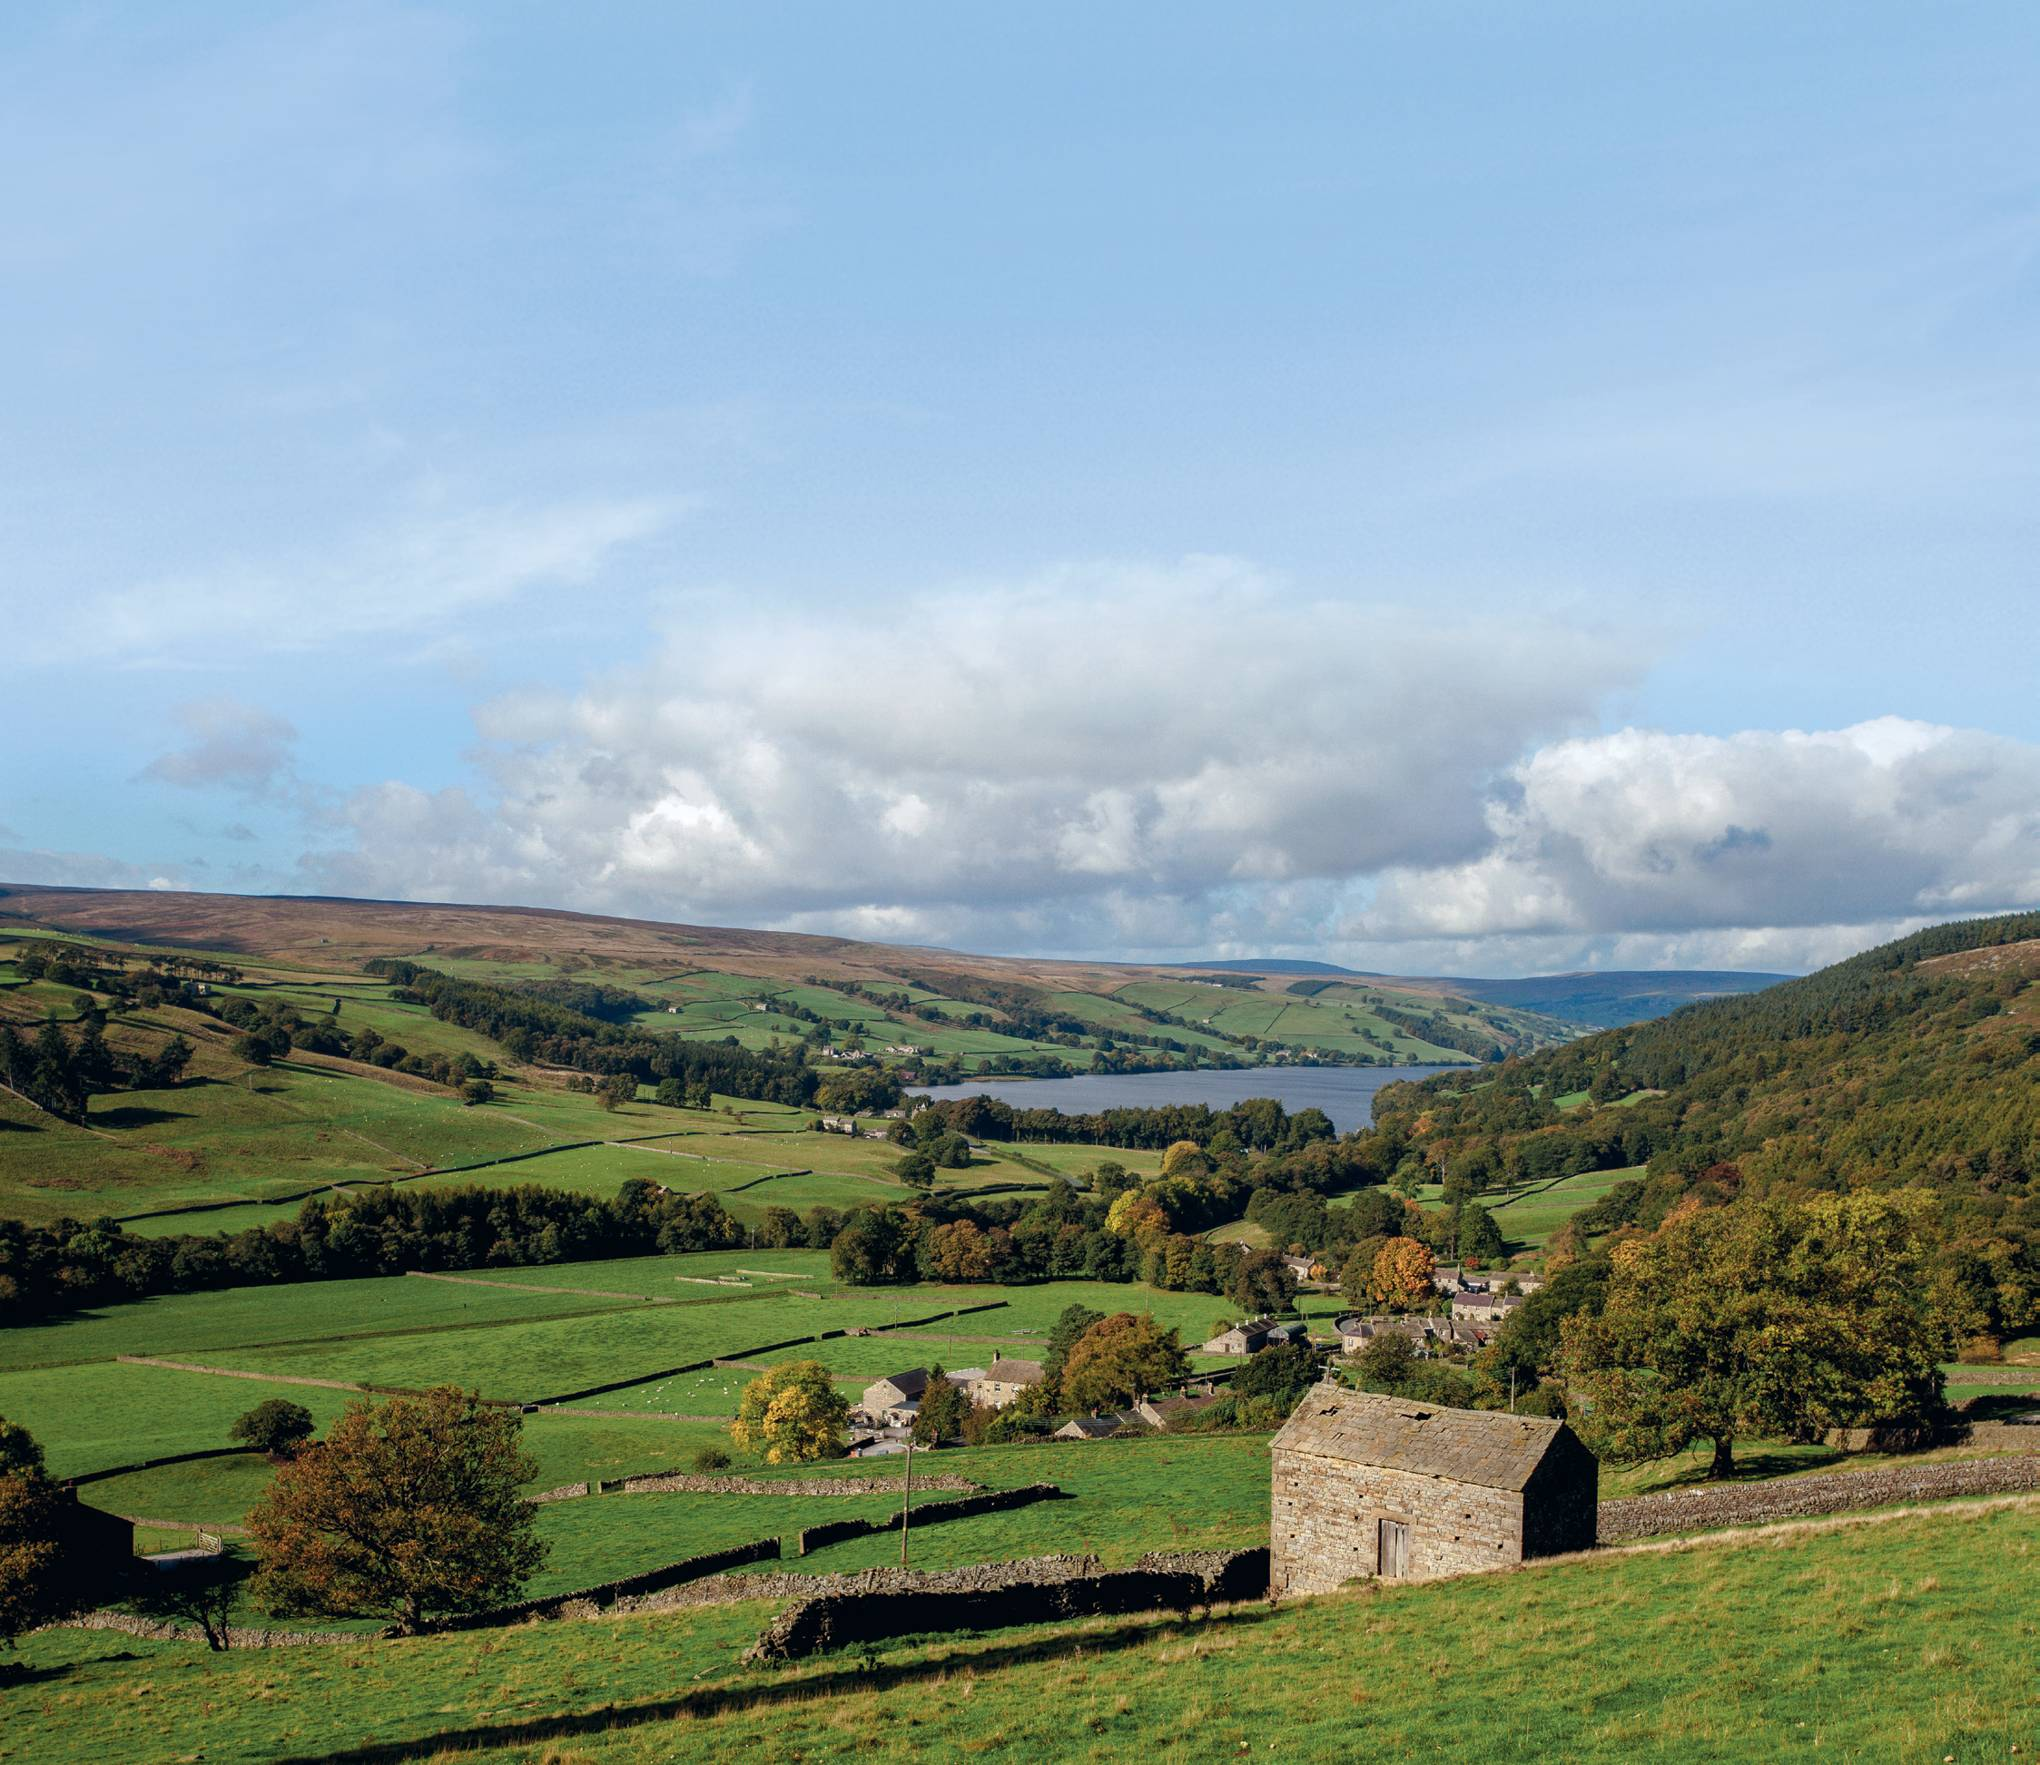 Our Travel Editor embarks on a walking holiday in Yorkshire